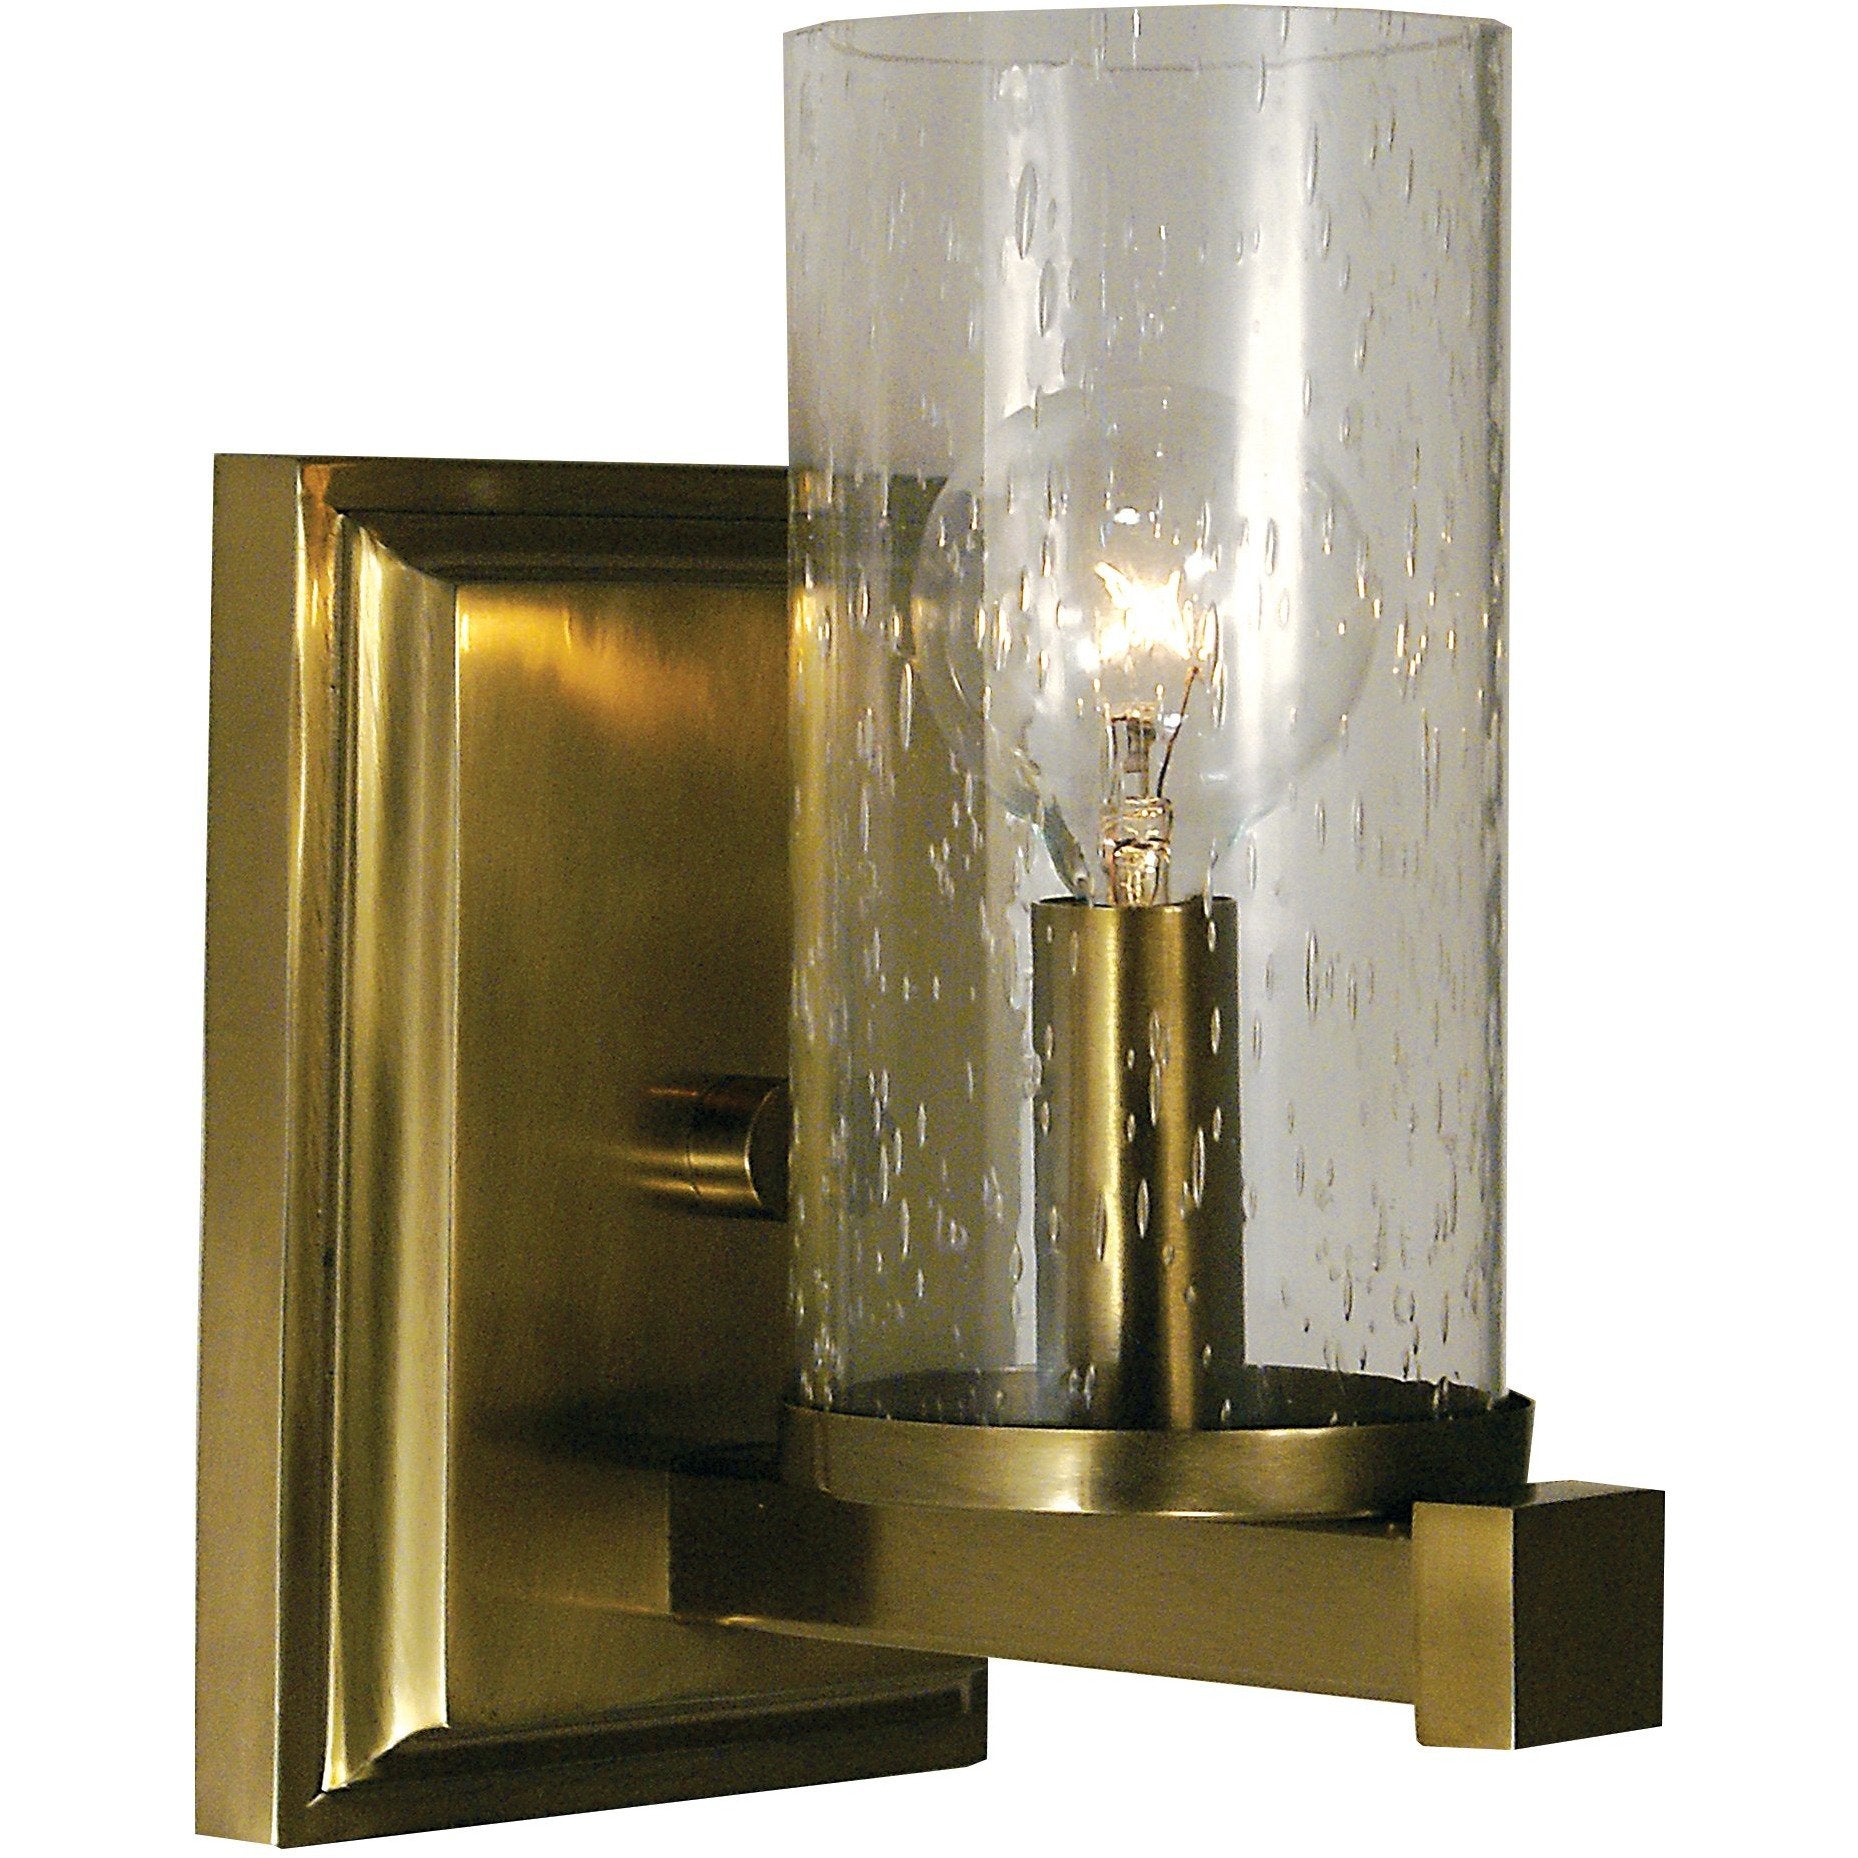 Framburg Wall Sconces Brushed Bronze 1-Light Brushed Bronze Compass Sconce by Framburg 1111